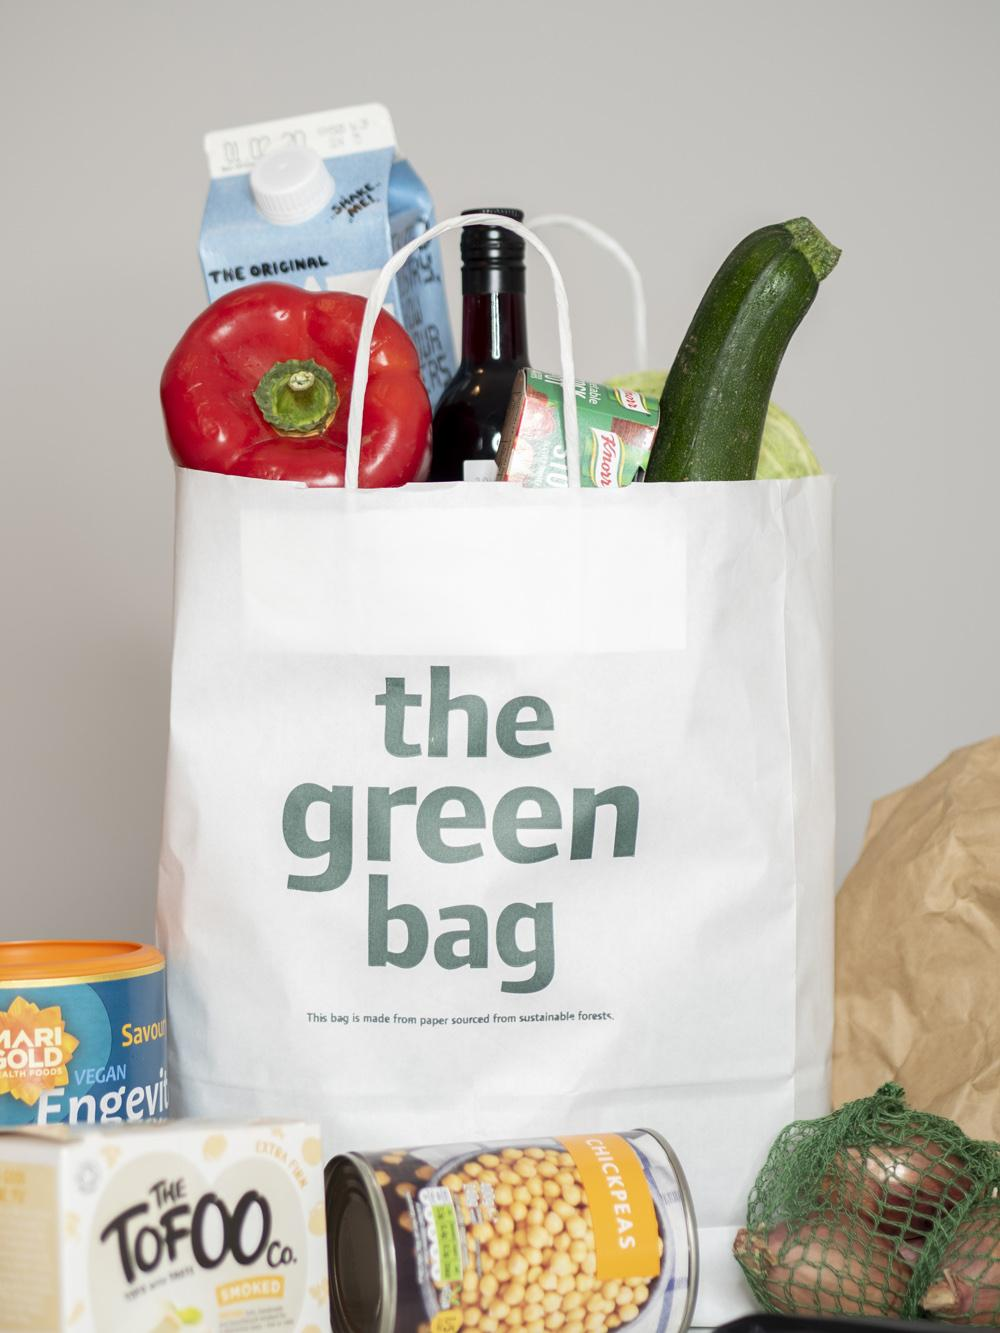 Beginner's Guide to Vegan Food Shopping | Veganuary 2020 (picture of shopping bag and groceries)